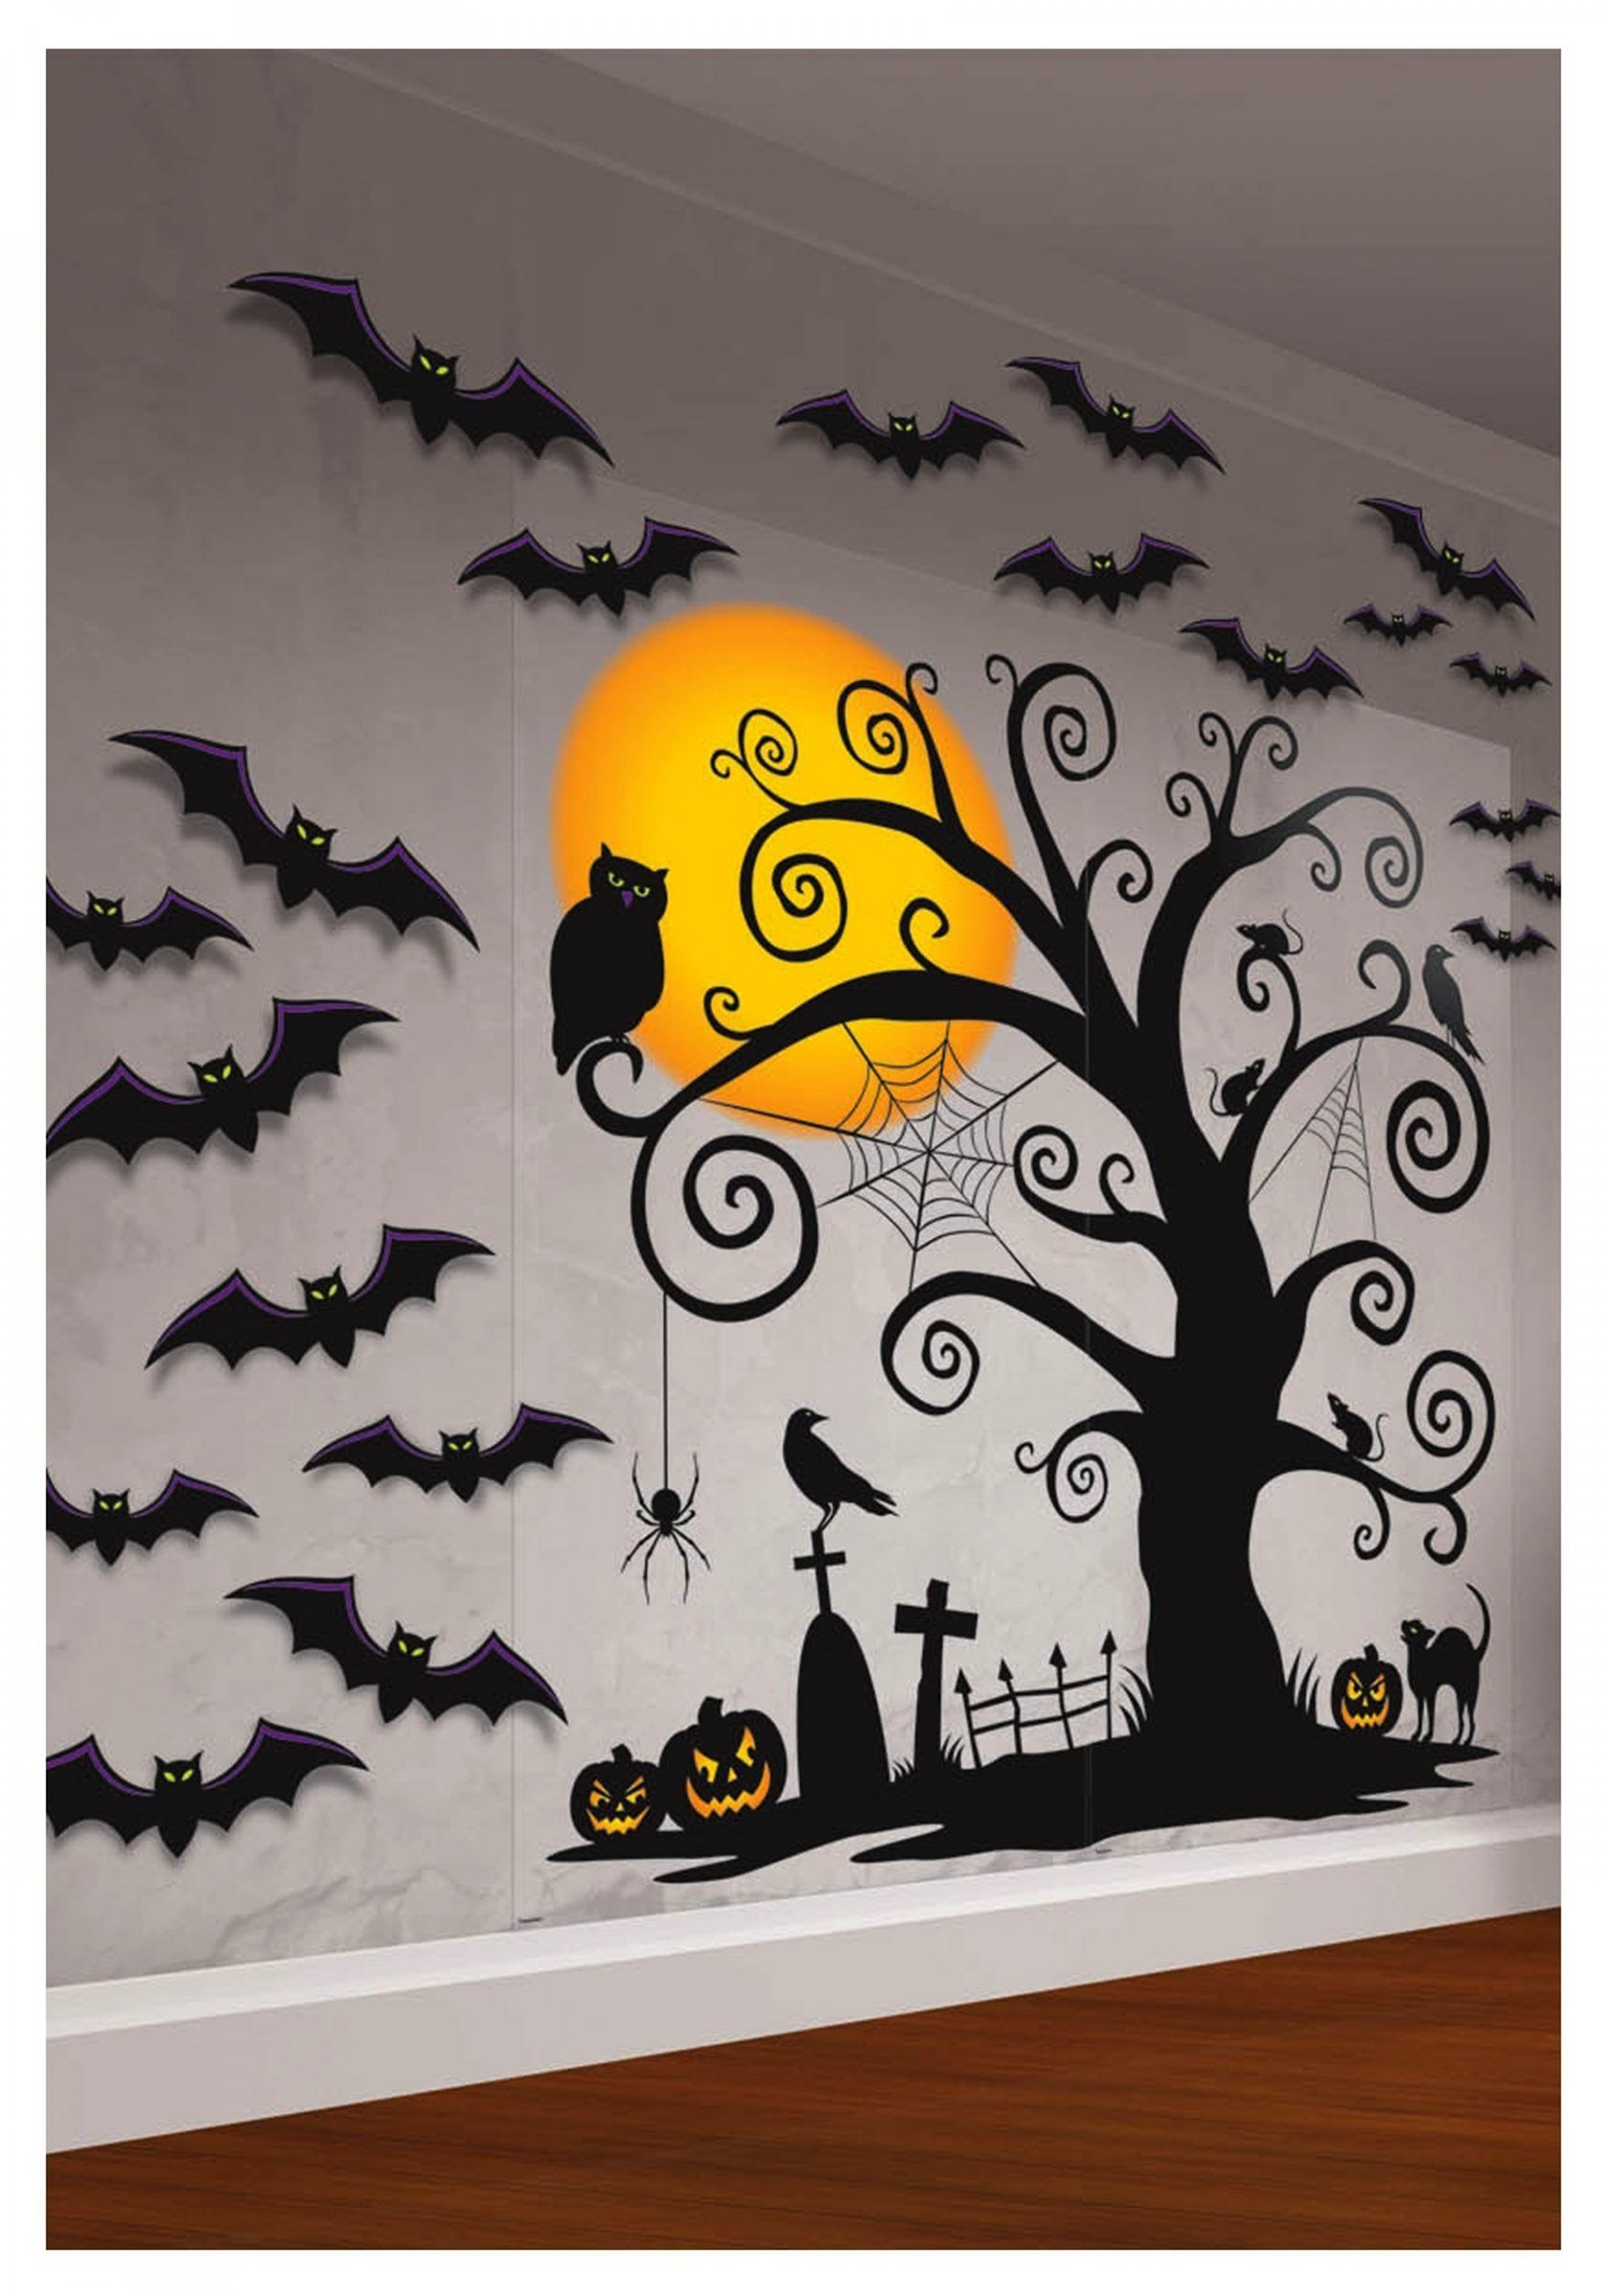 Pin By Wuuzzz On Home Indoor Ideas Halloween Wall Decor